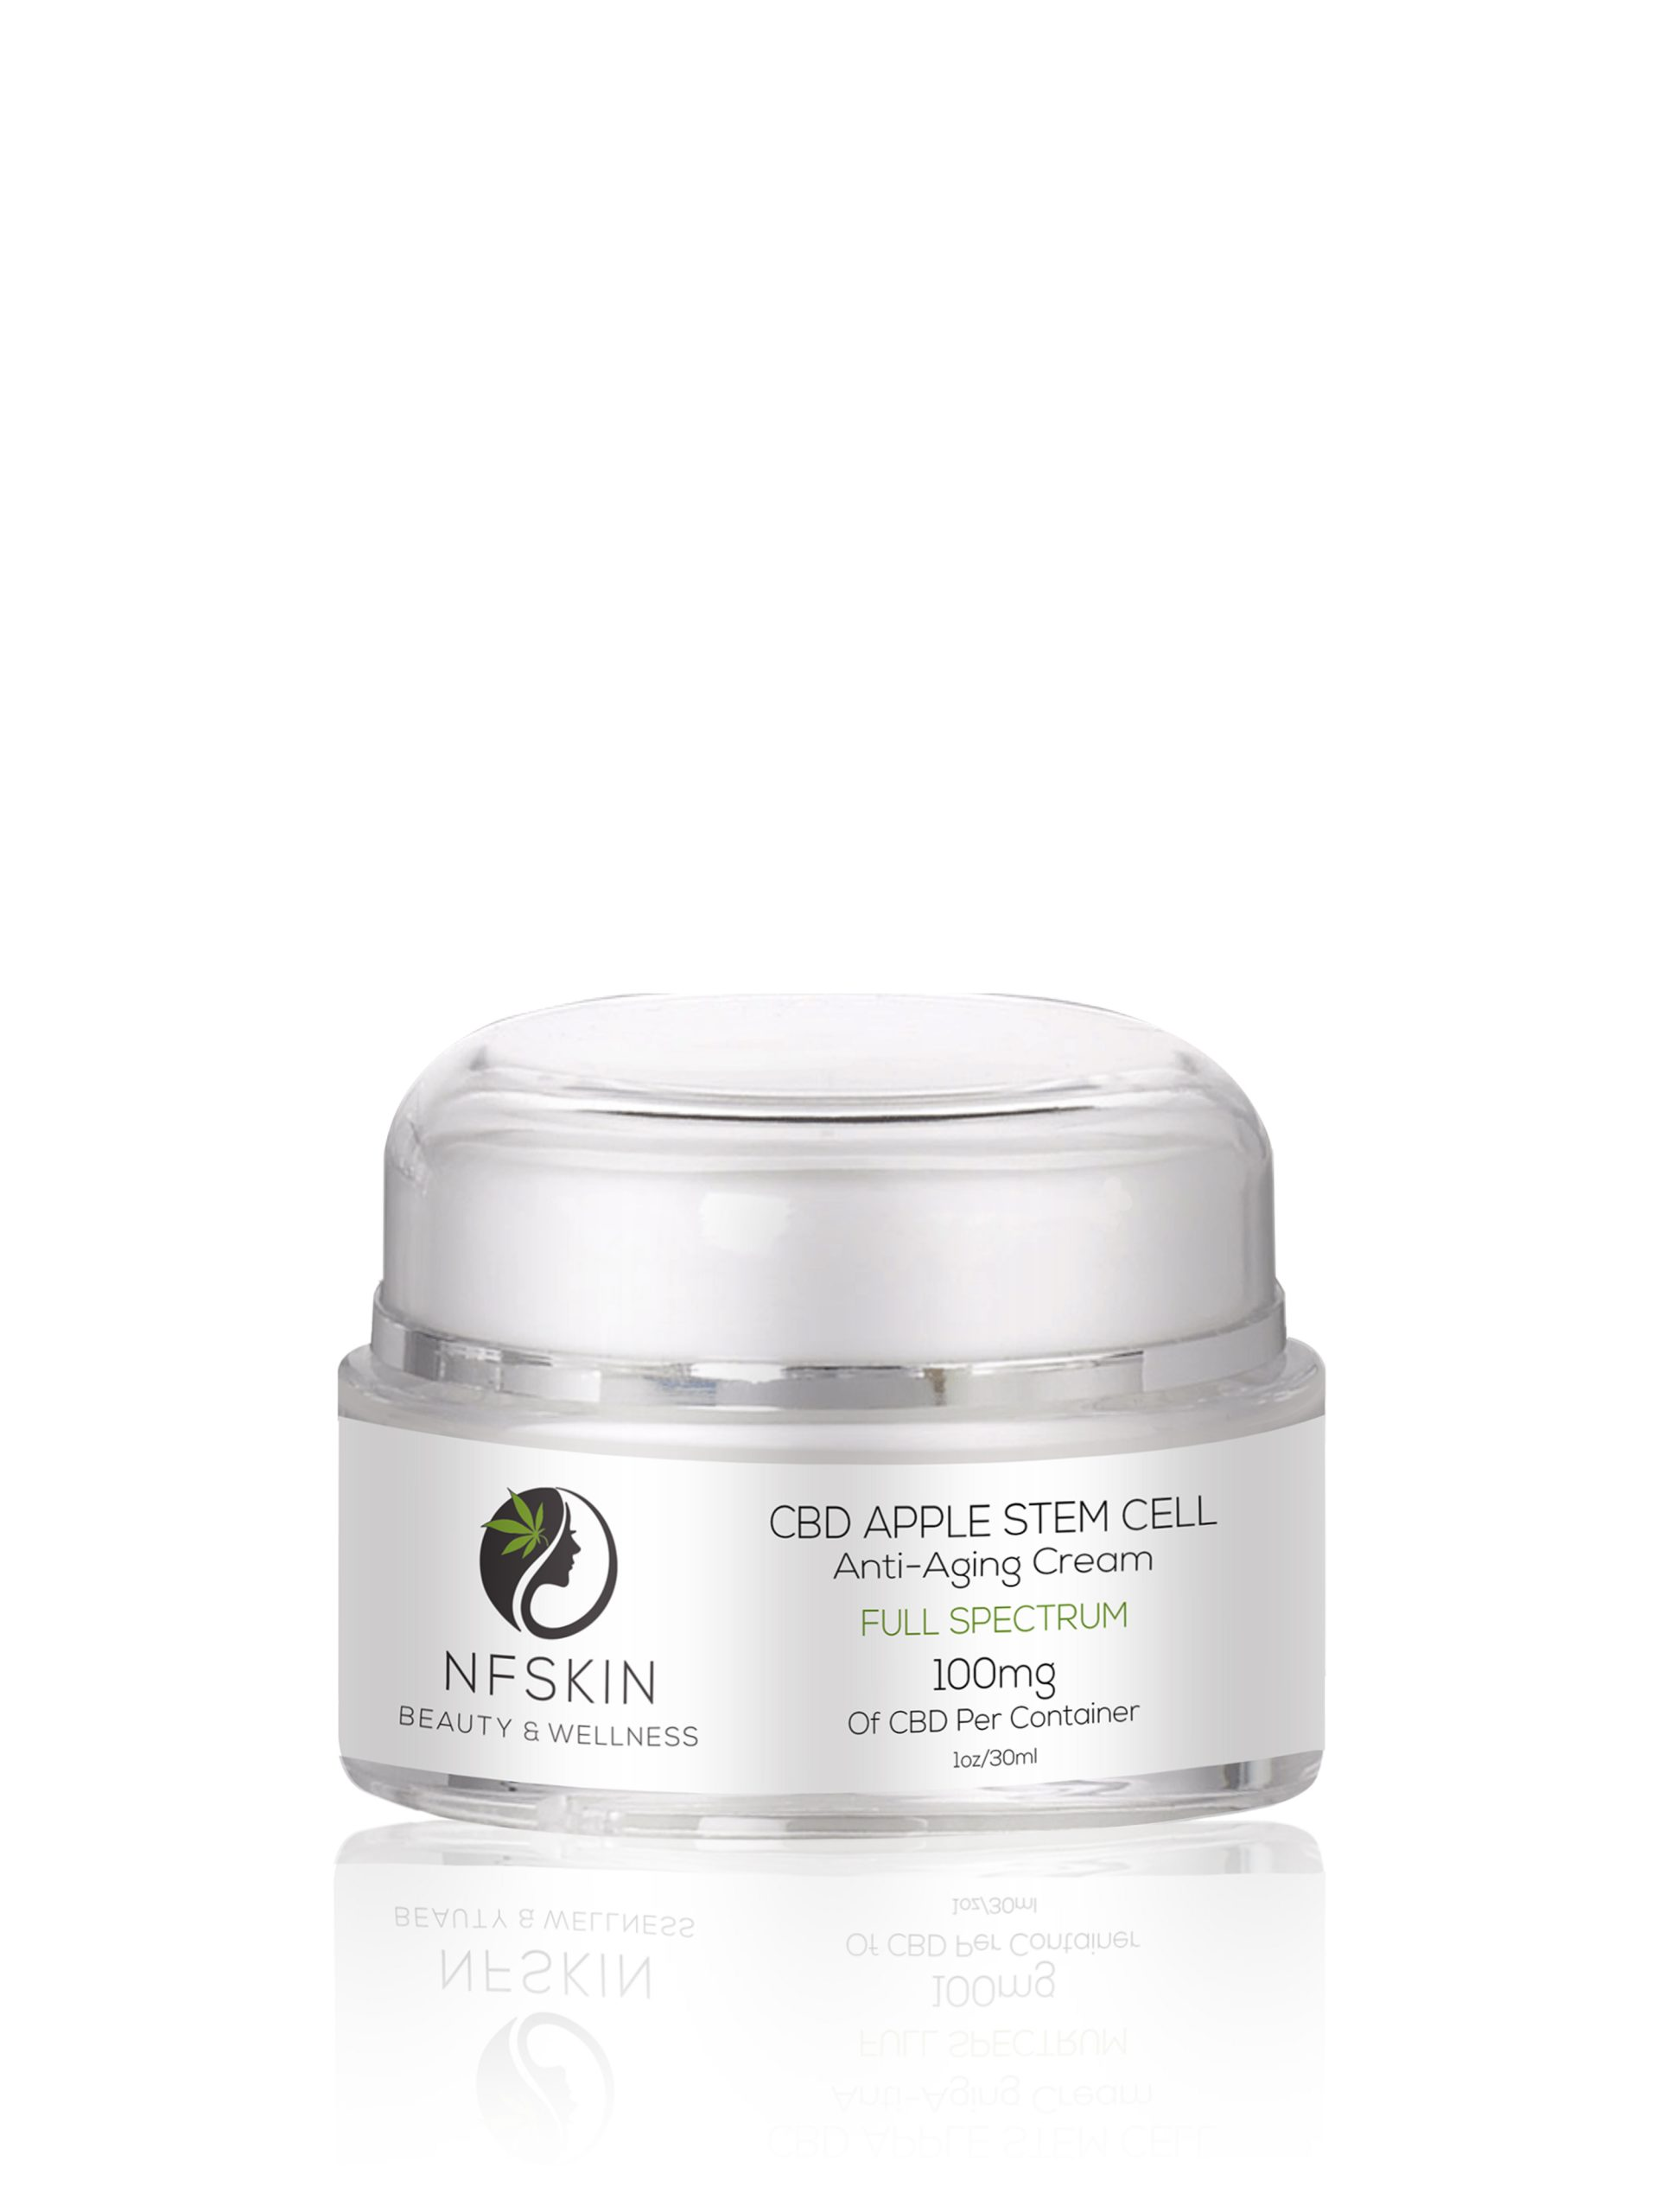 Apple Stem Cell Anti-Aging Cream FS CBD